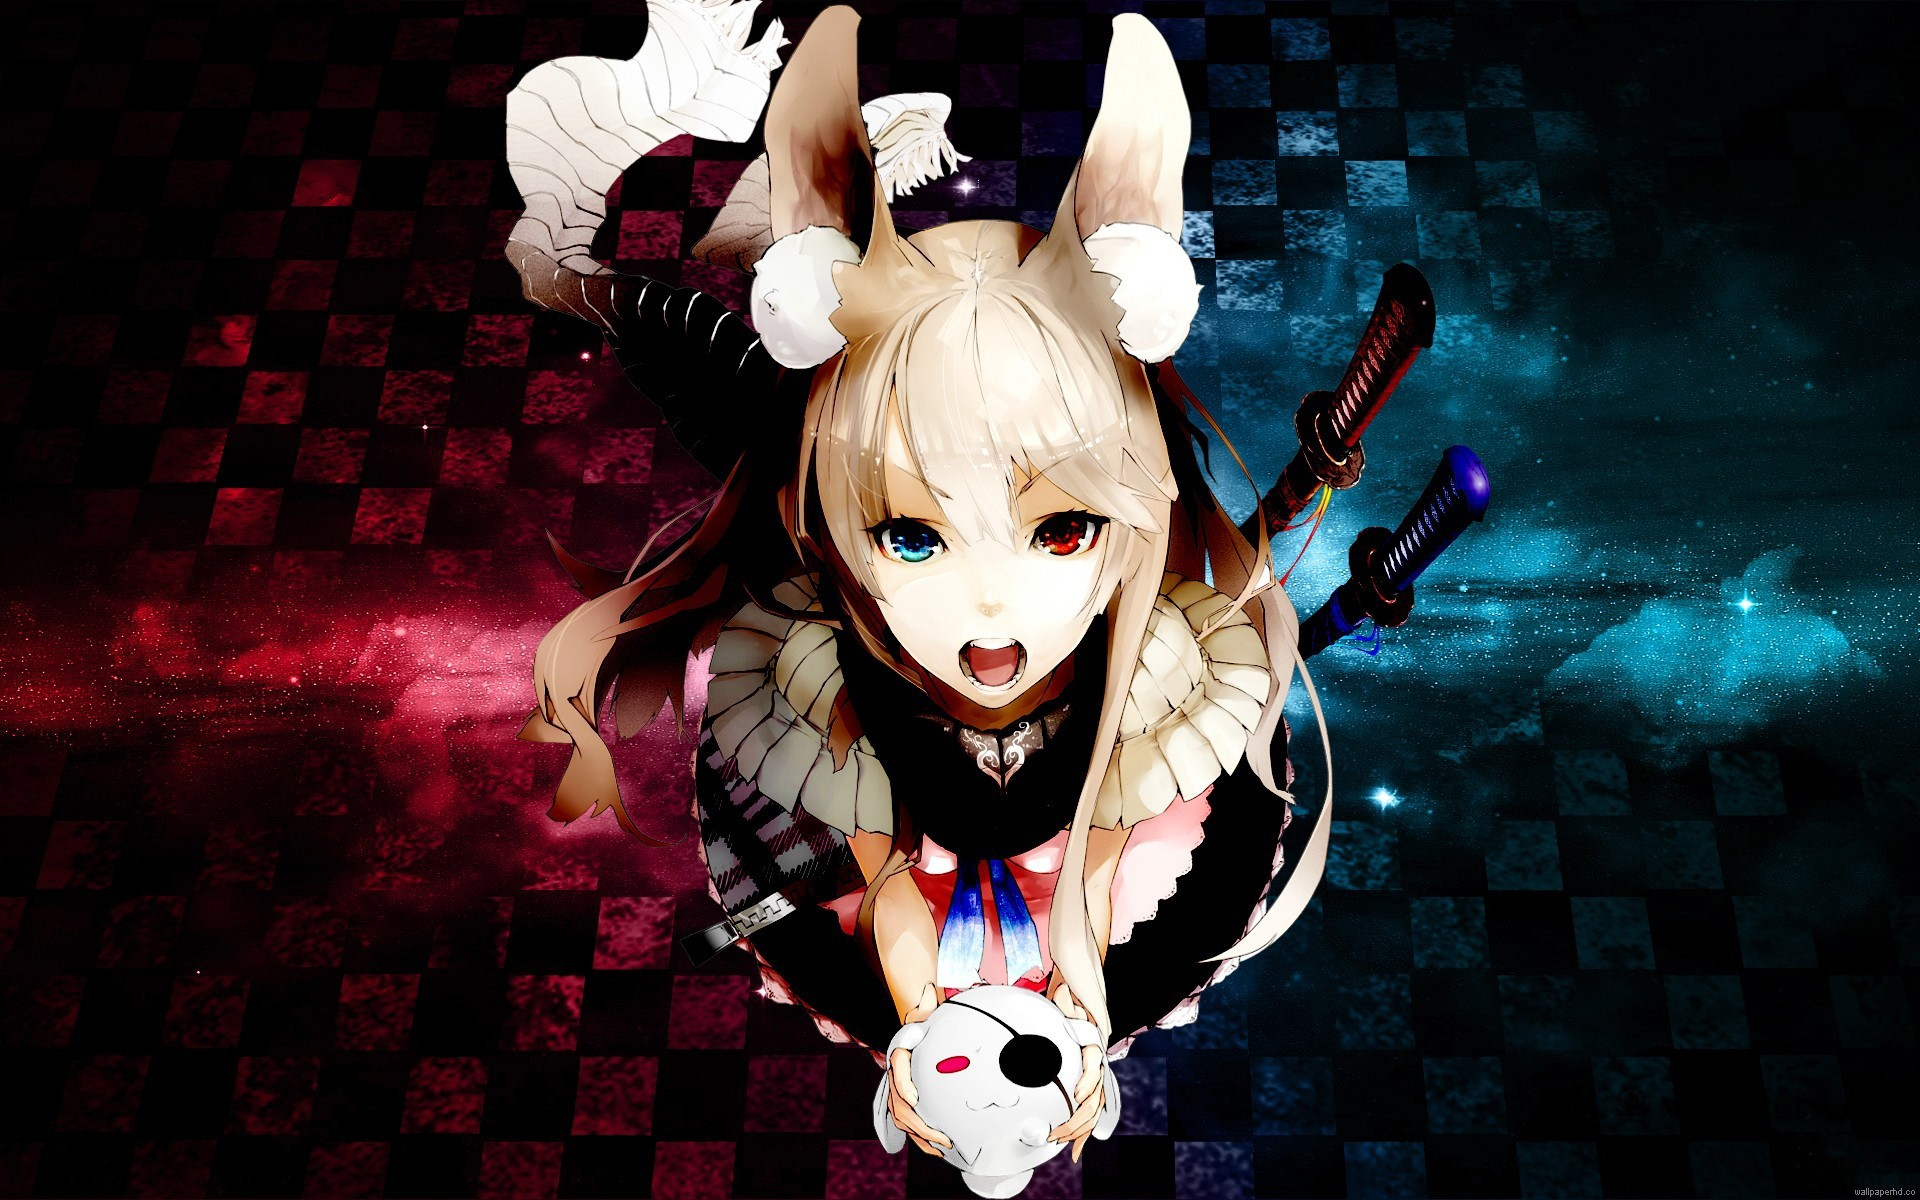 dark anime background scenery ·① download free stunning wallpapers